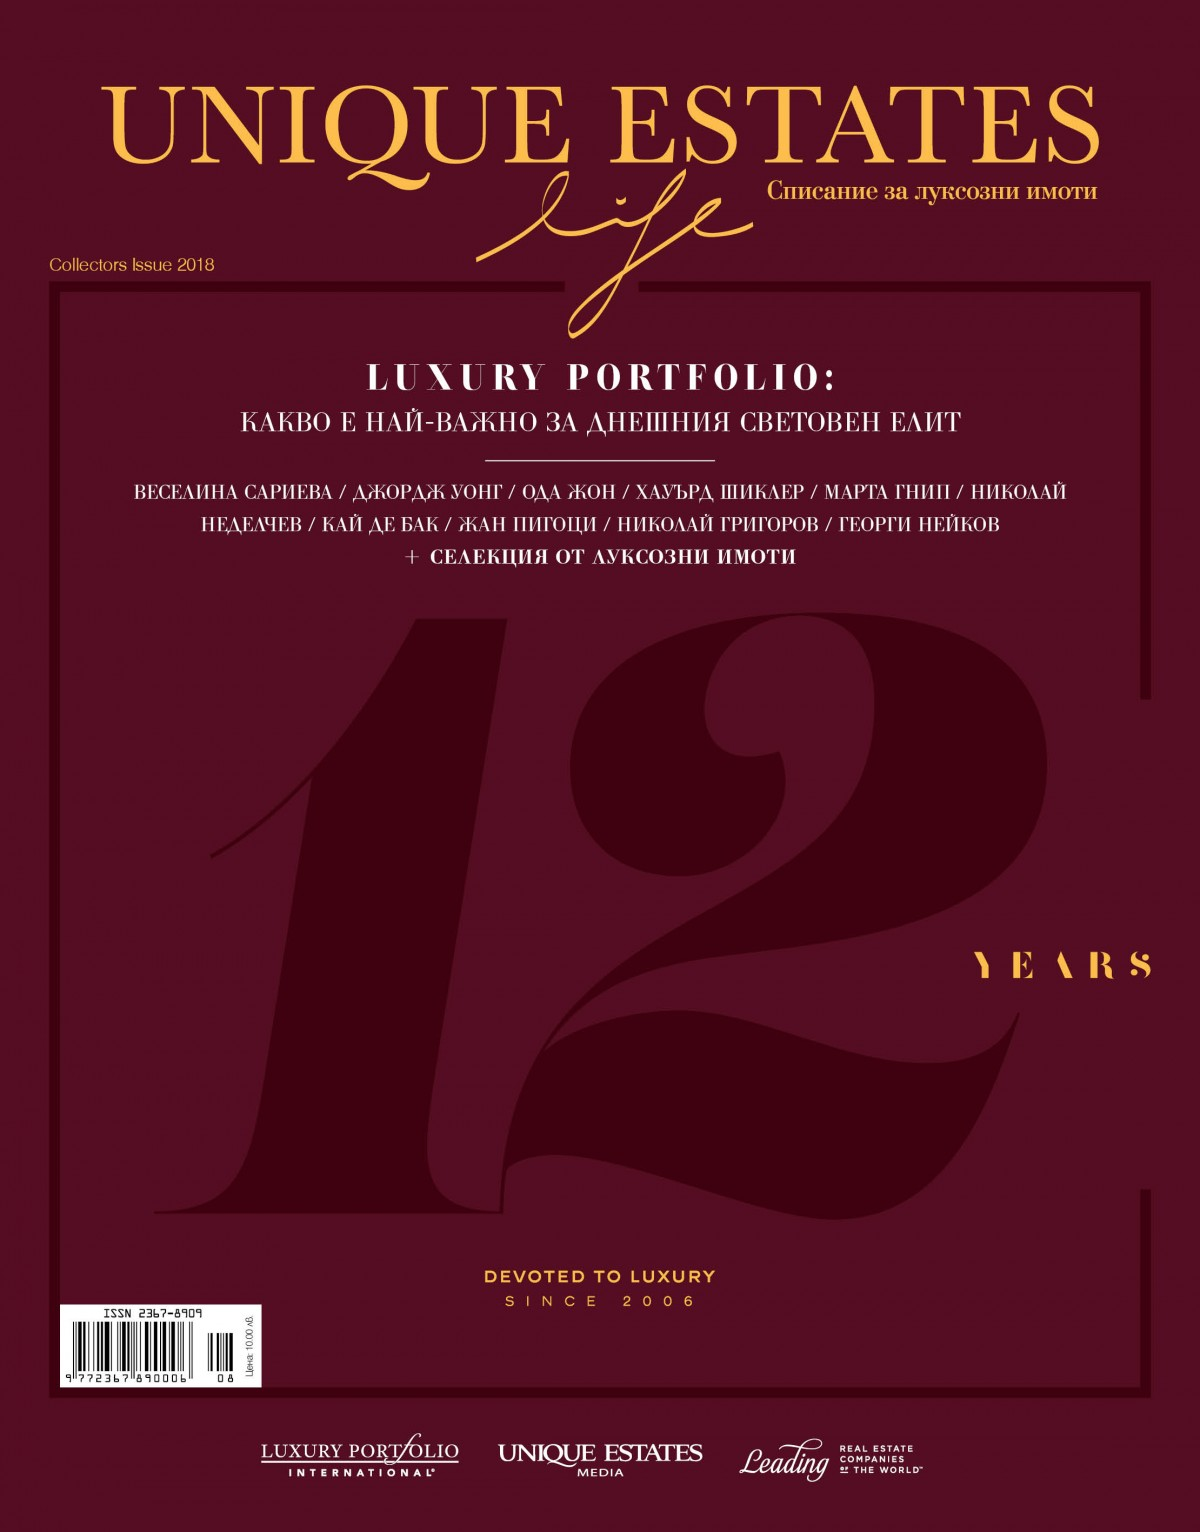 Collectors Issue 2018